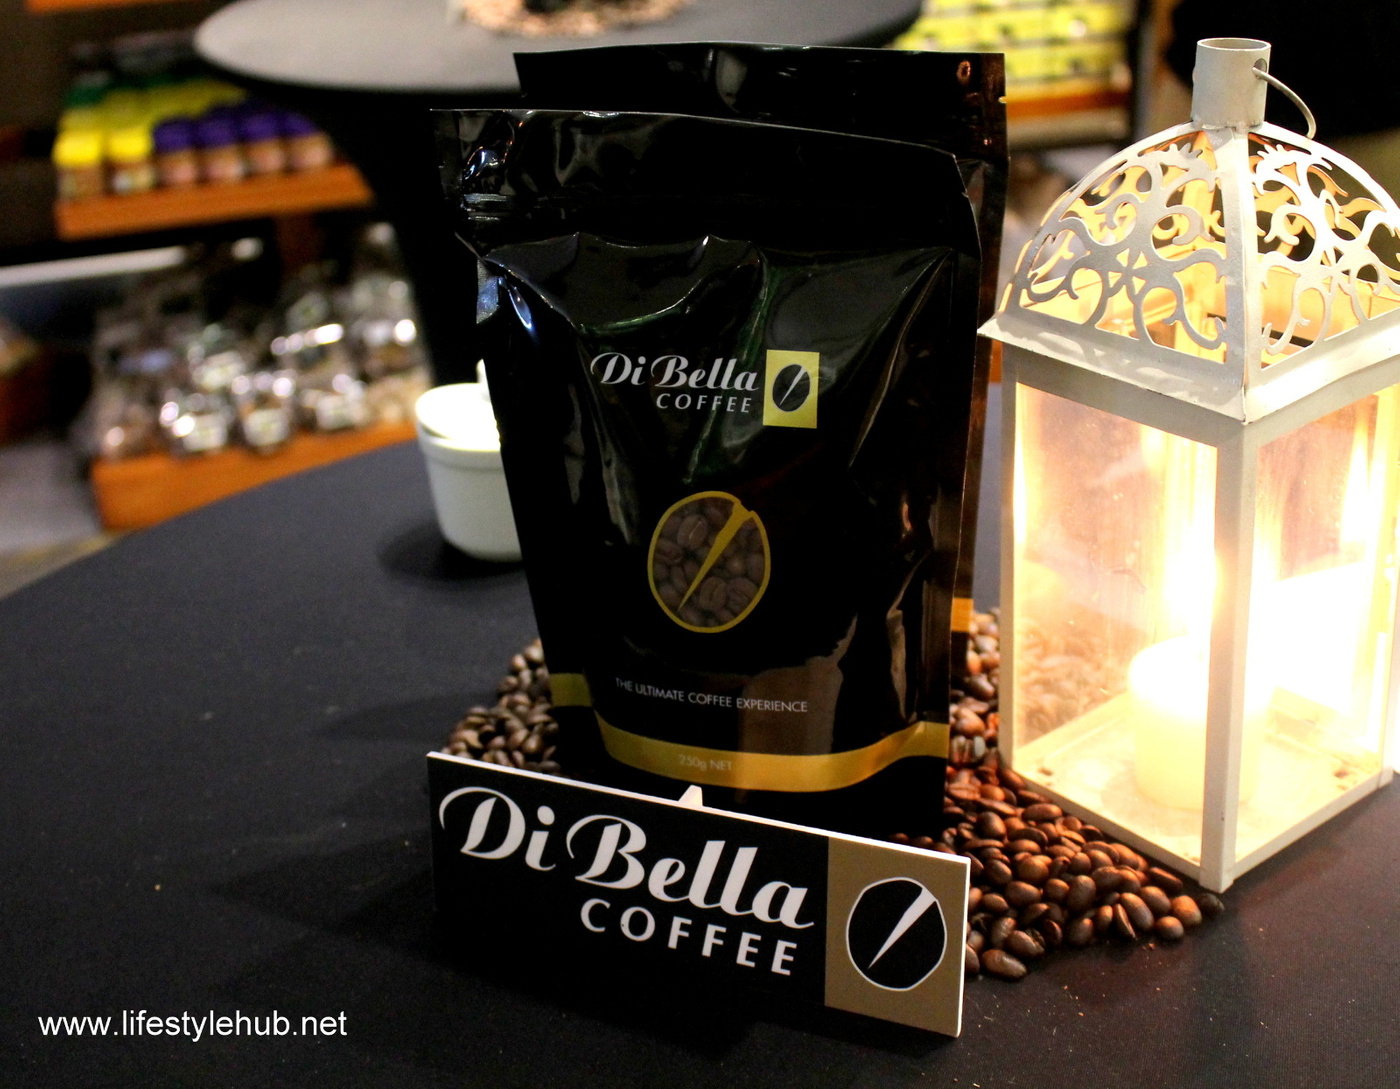 Di Bella Coffee at cravings